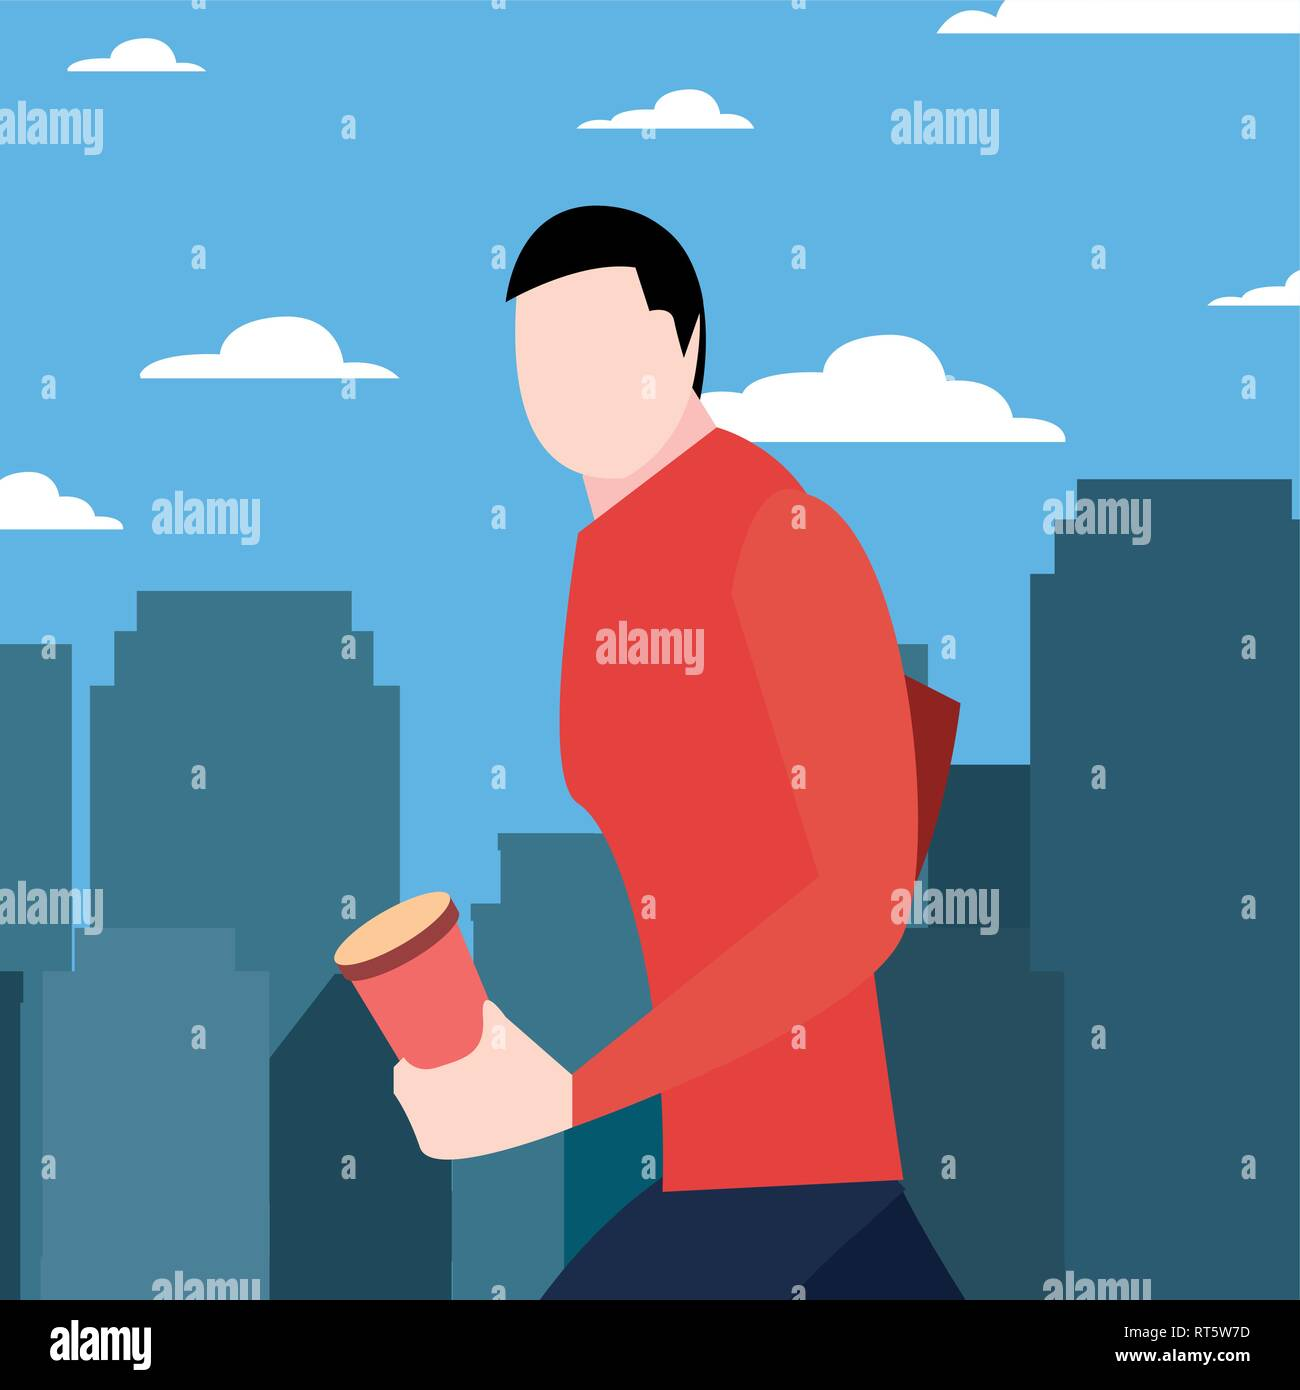 man walking with disposable cup in hand vector illustration - Stock Vector